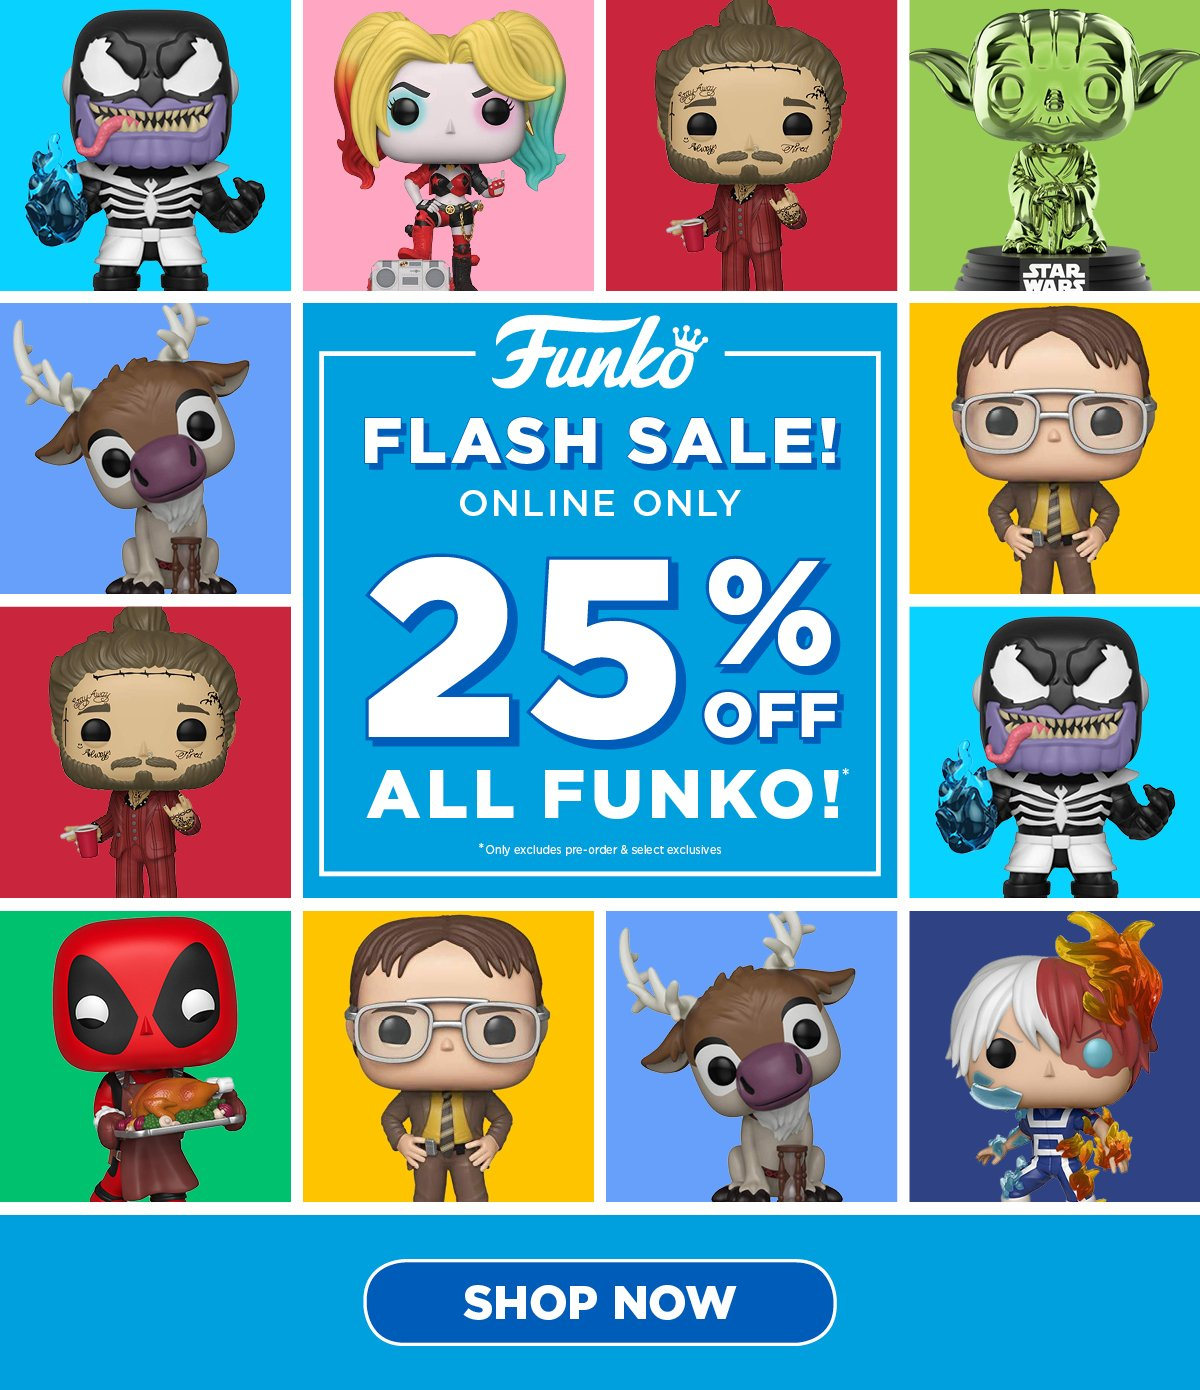 Funko Flash Sale - ONLINE ONLY: 25% off ALL FUNKO!- SHOP NOW